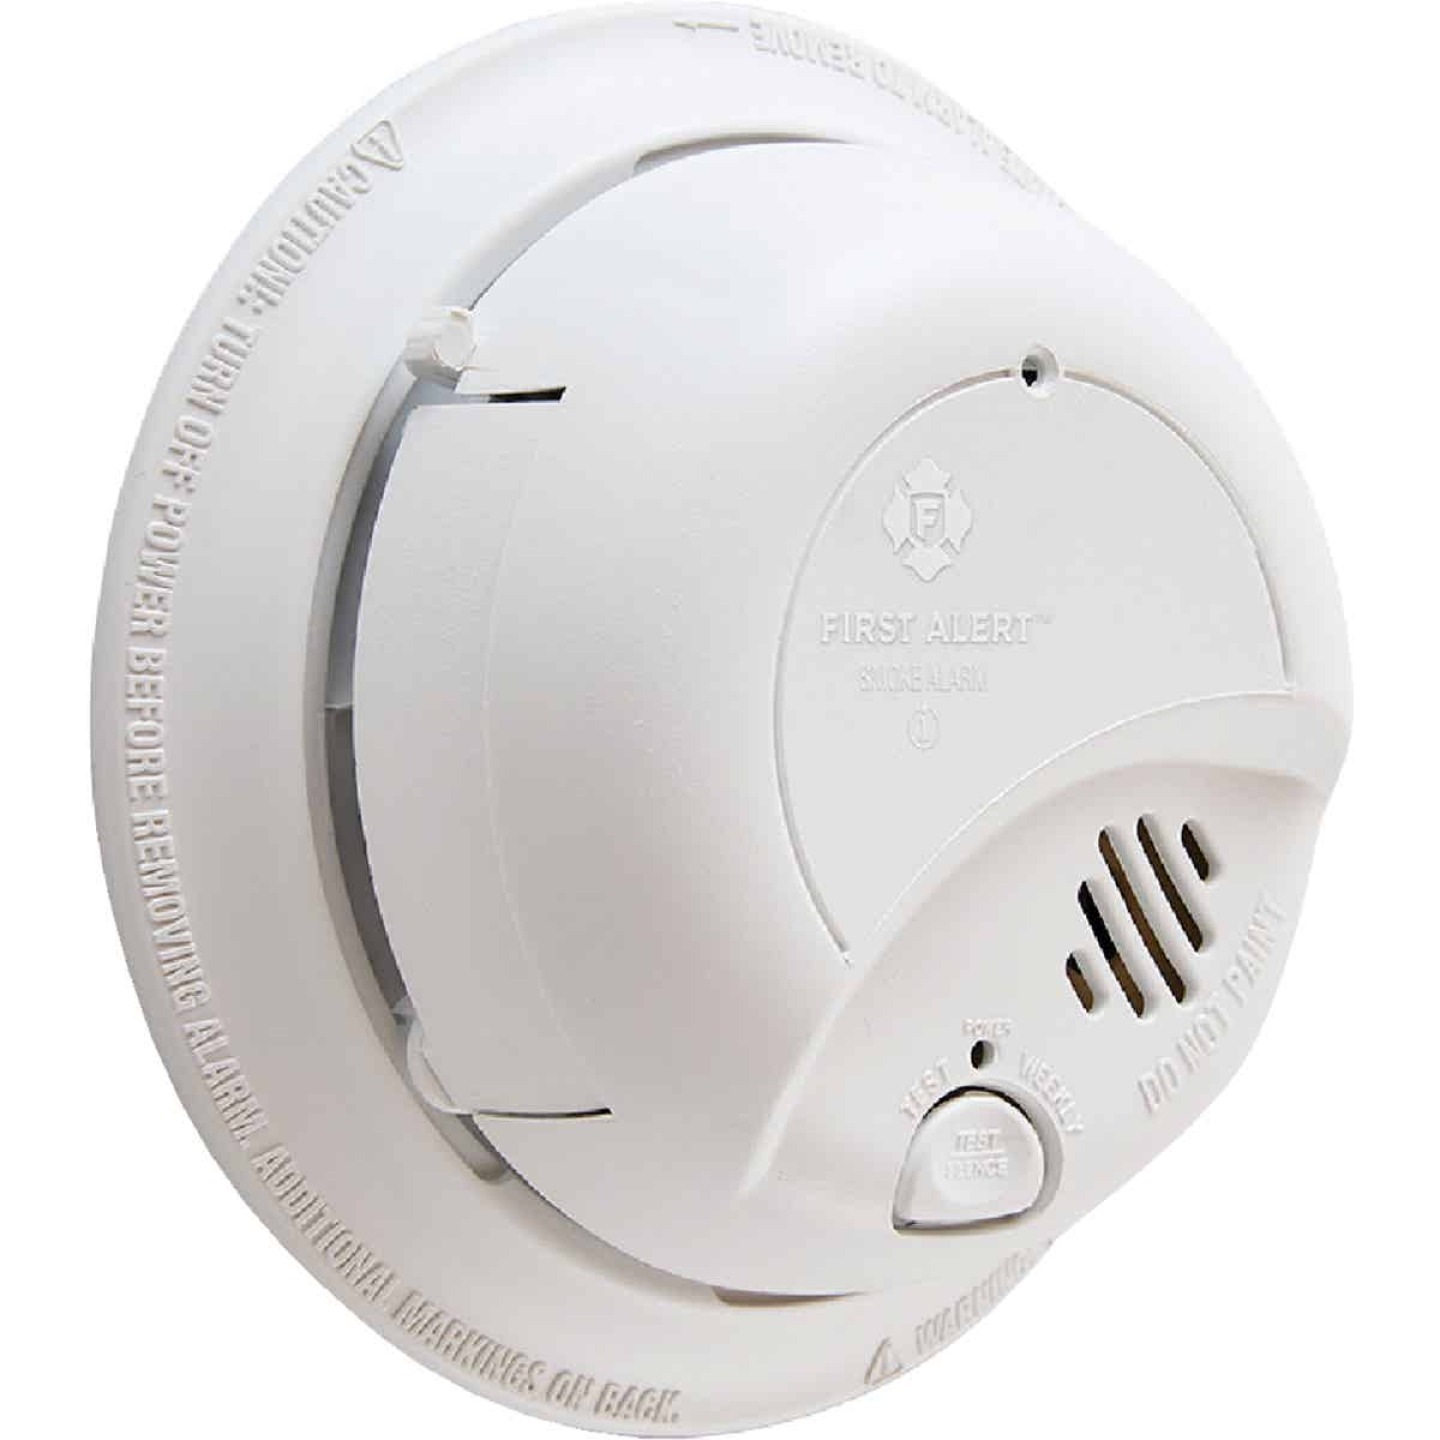 First Alert Hardwired 120V Ionization Smoke Alarm Image 1